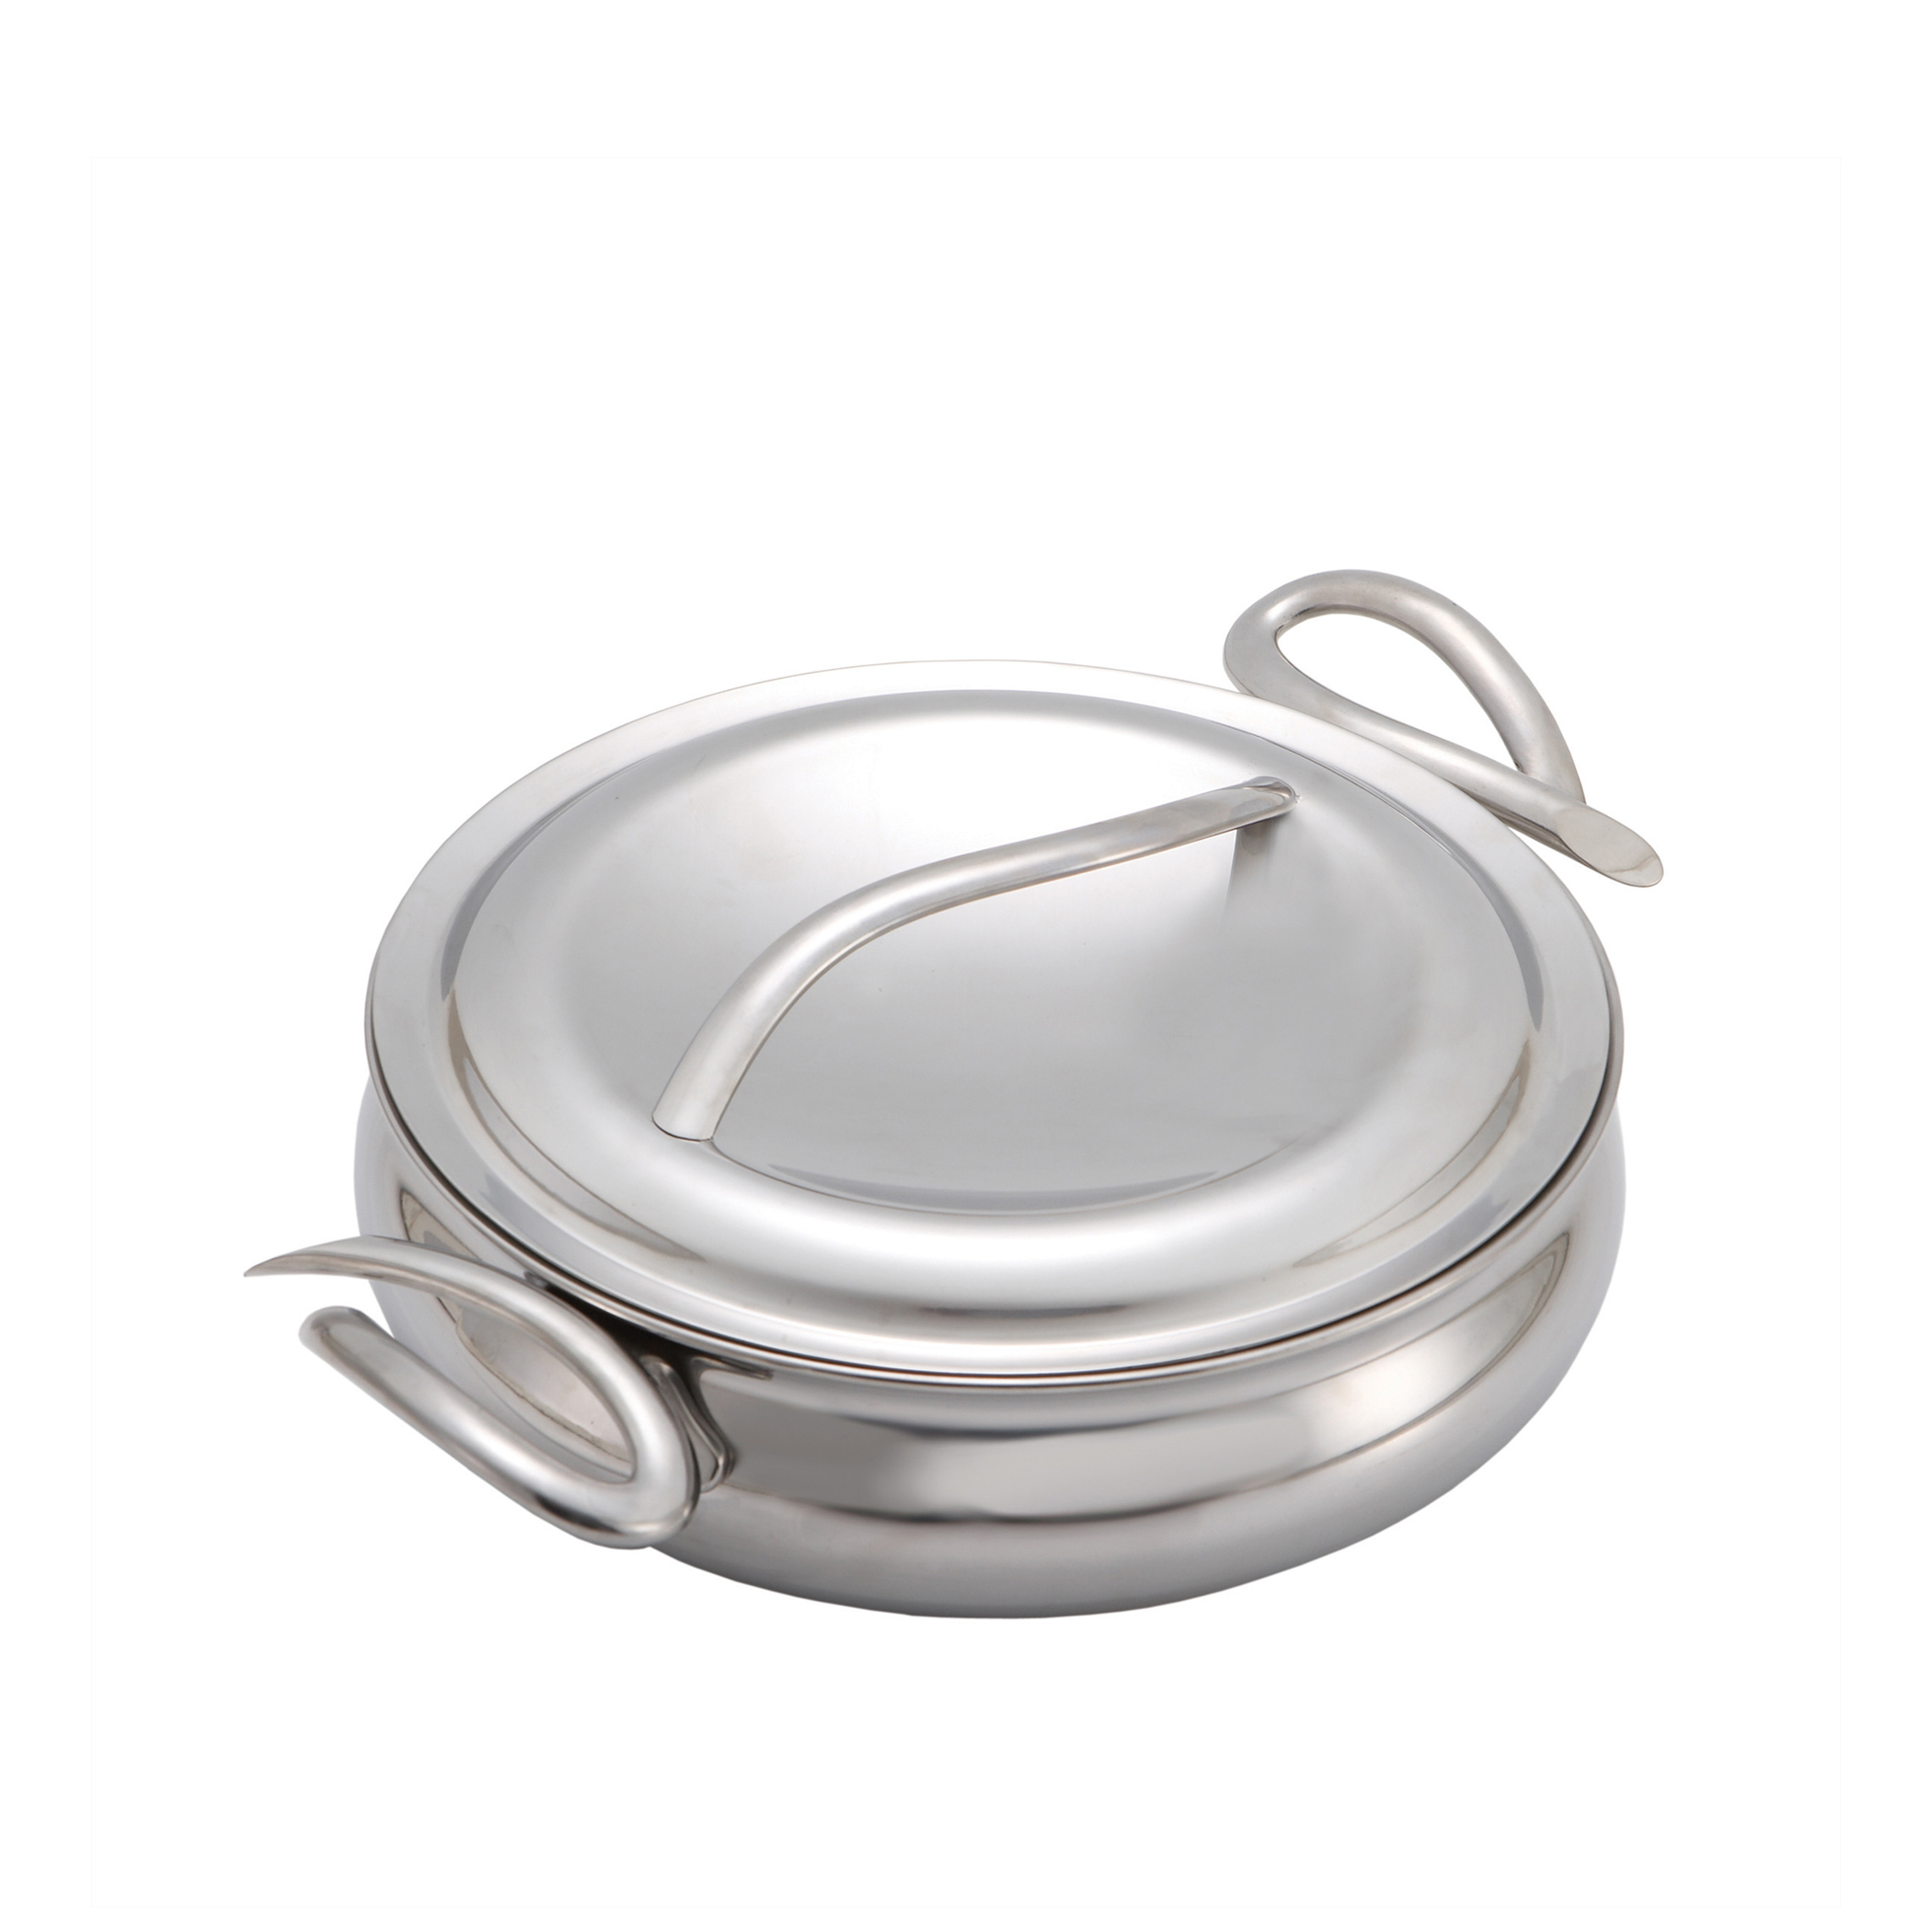 CookServ 10-inch Sauté Pan W/  Lid image number 0